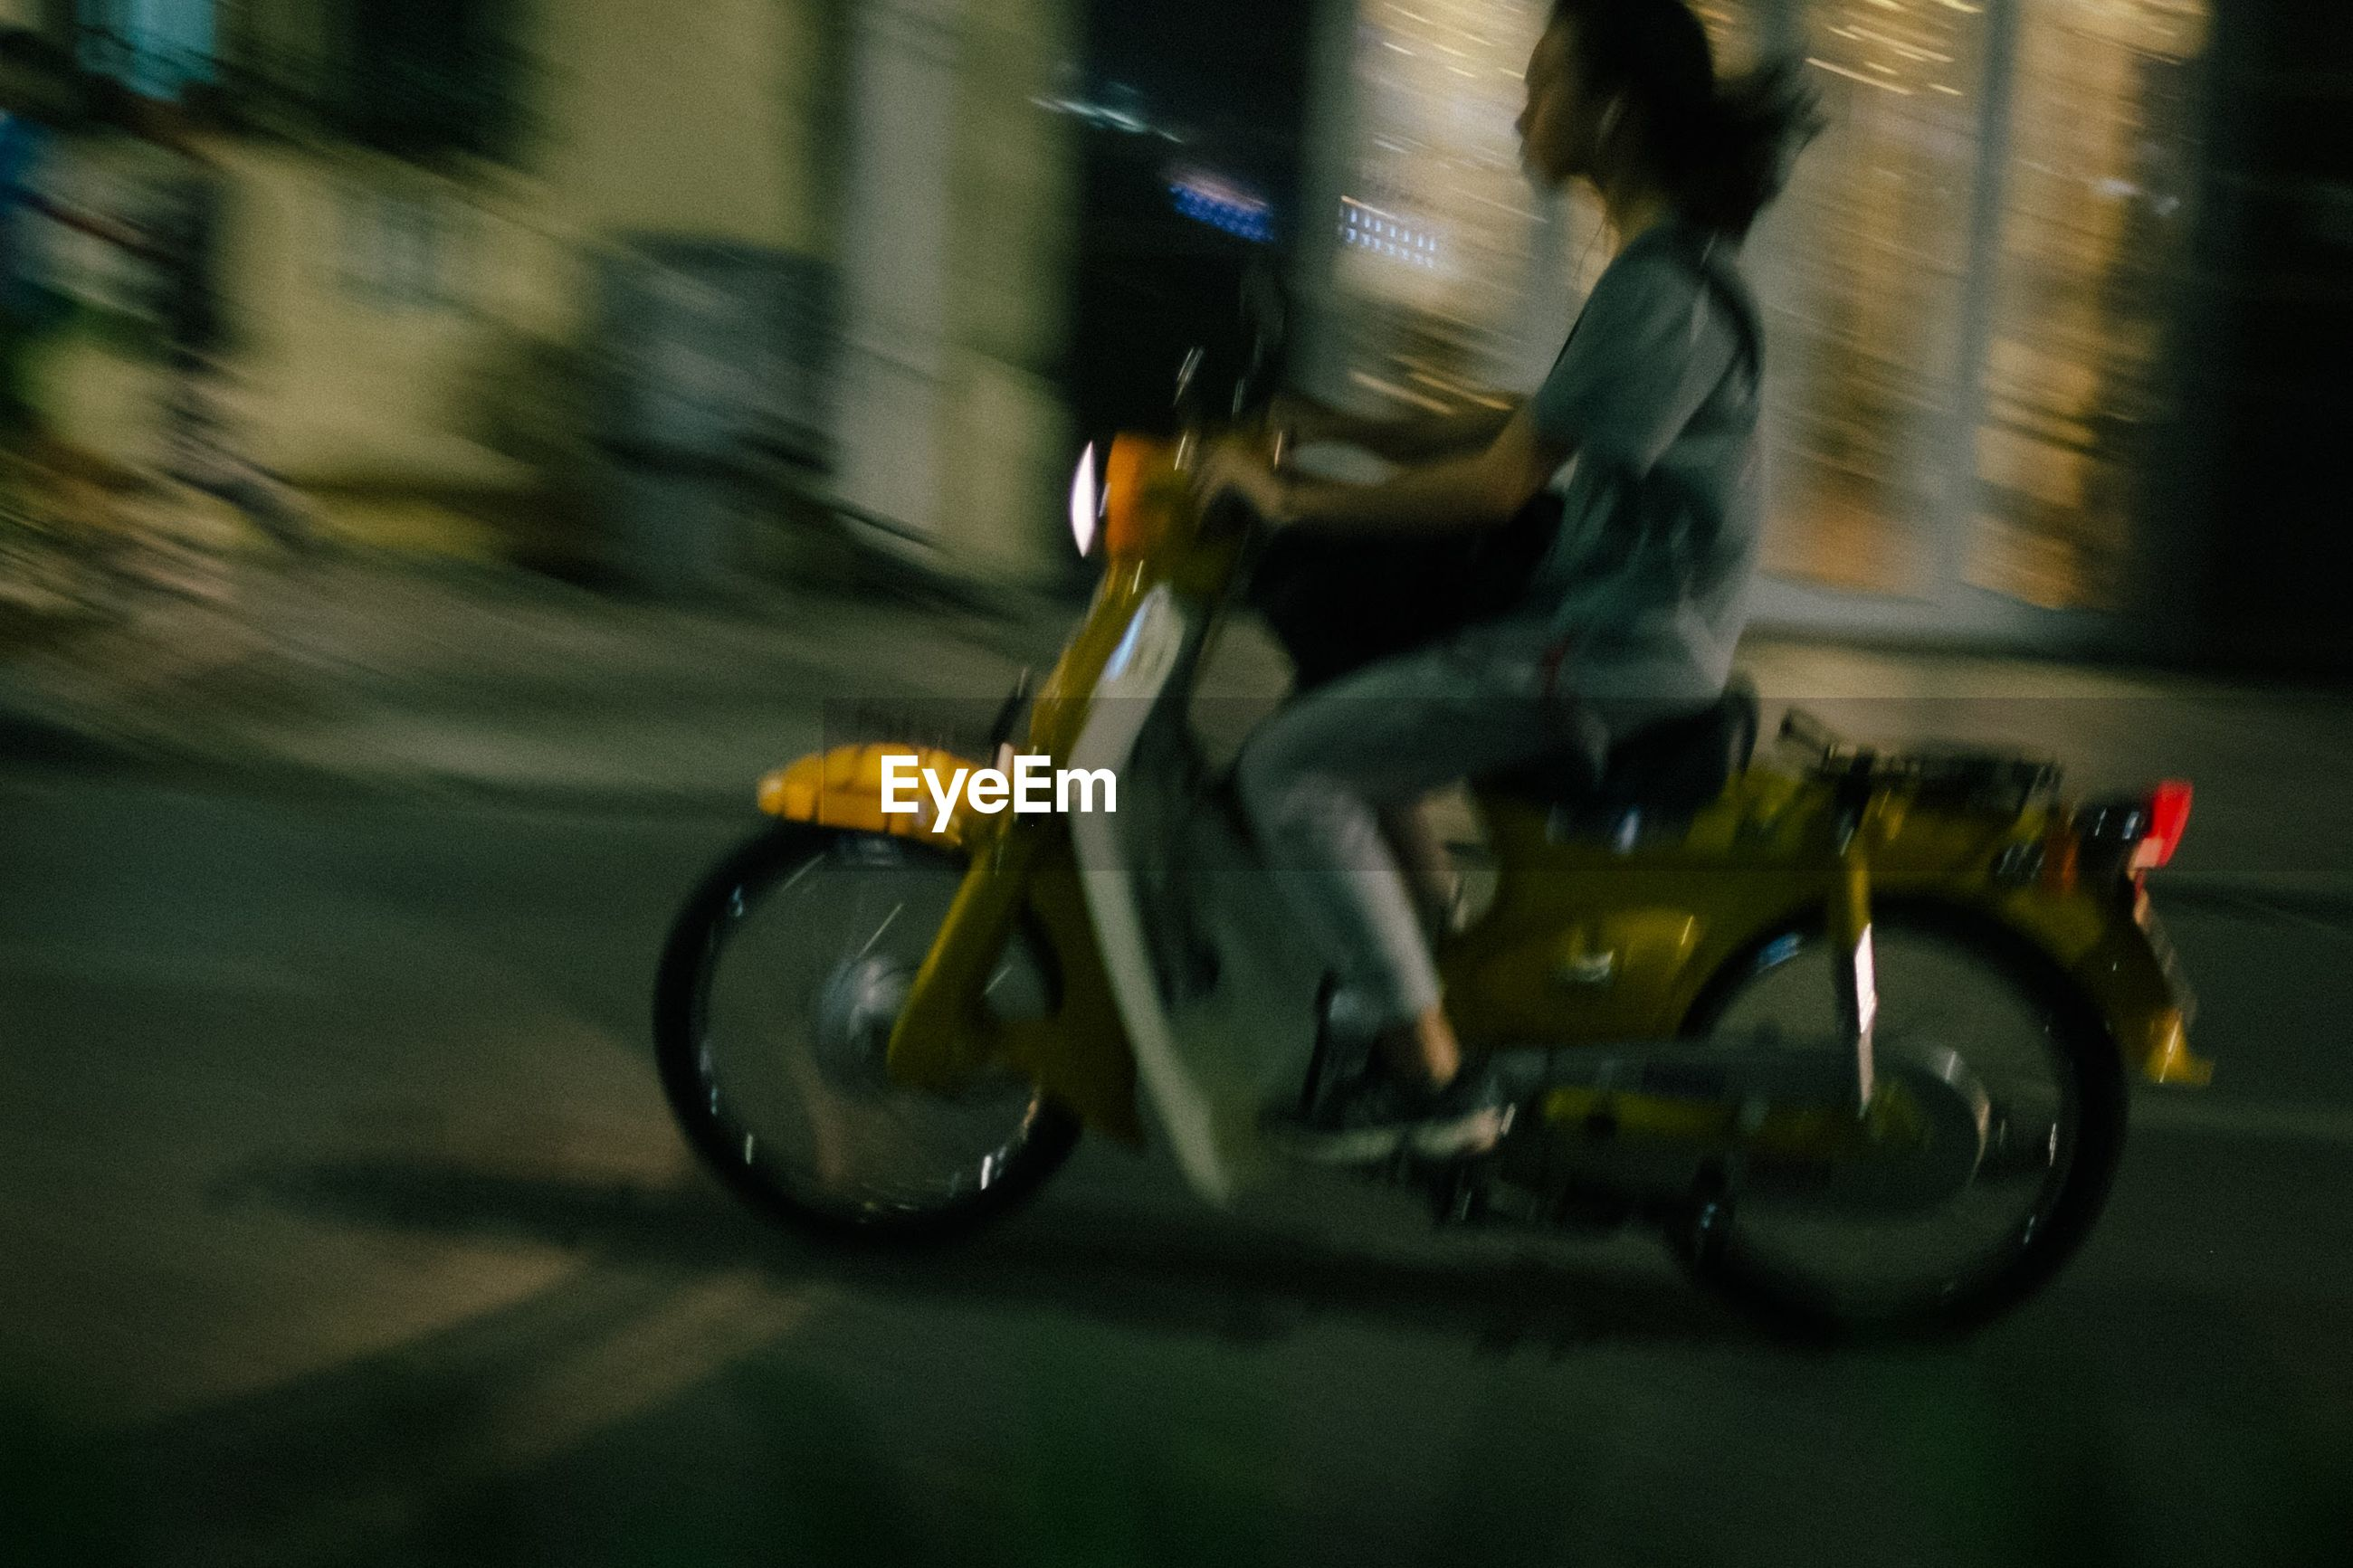 BLURRED MOTION OF MAN RIDING MOTORCYCLE